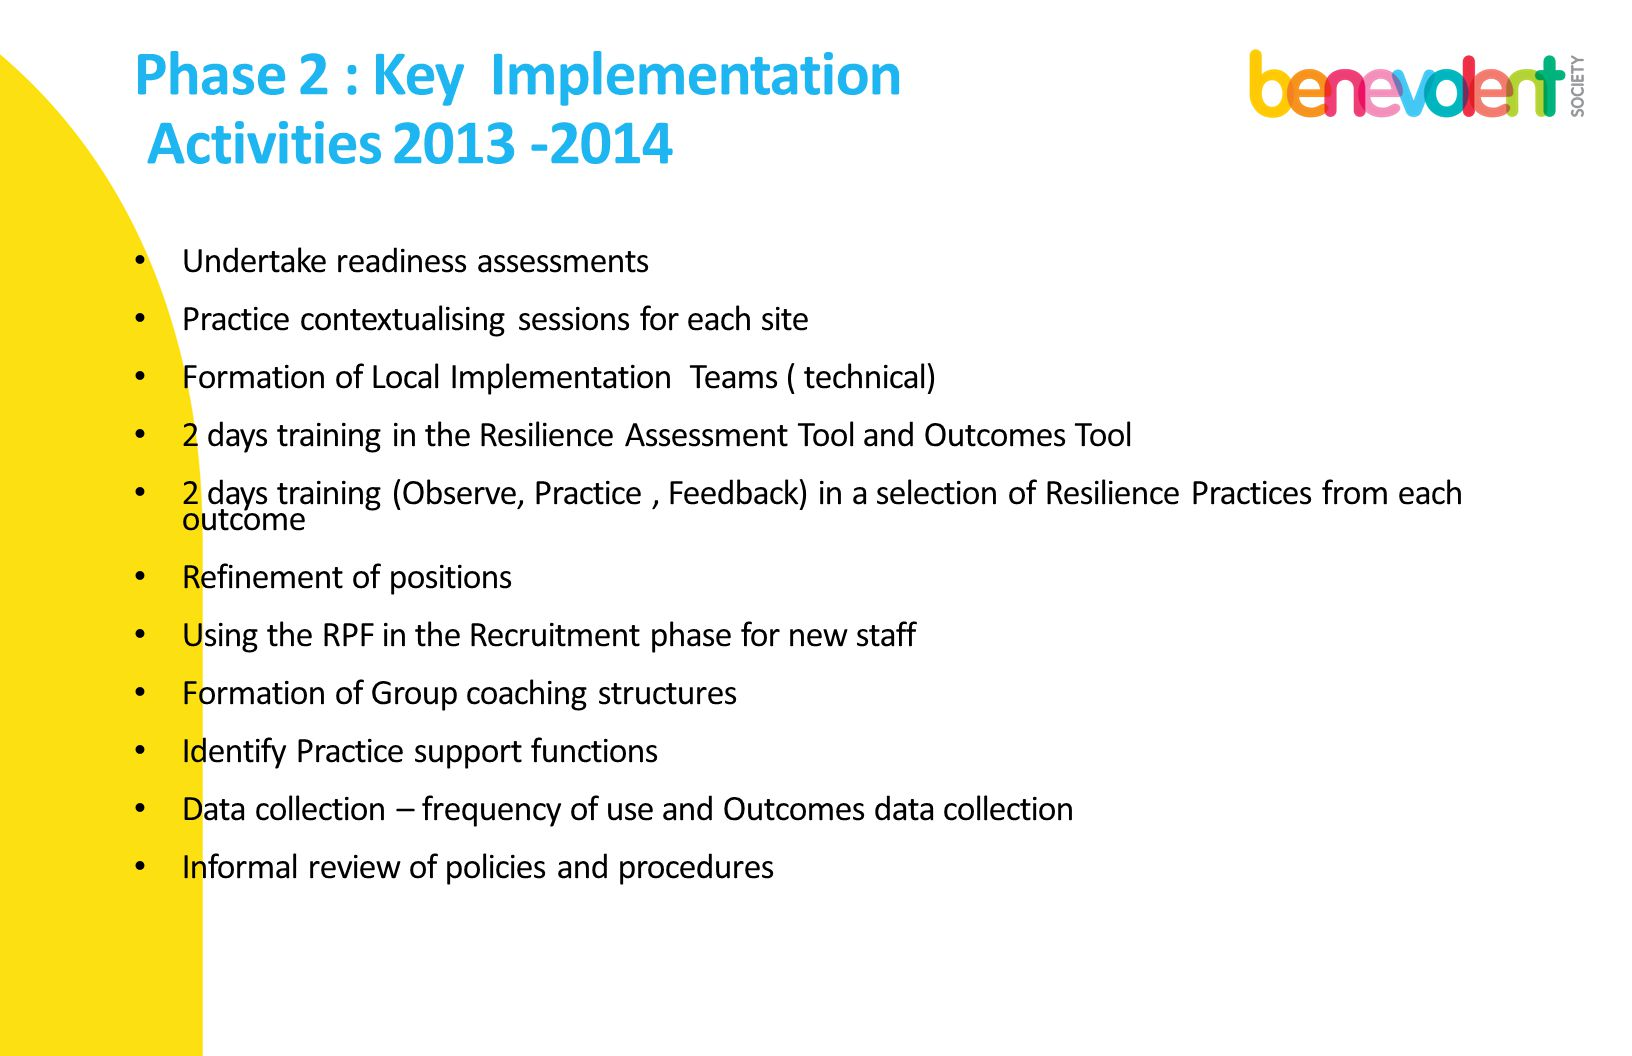 Phase 2 : Key Implementation Activities 2013 -2014